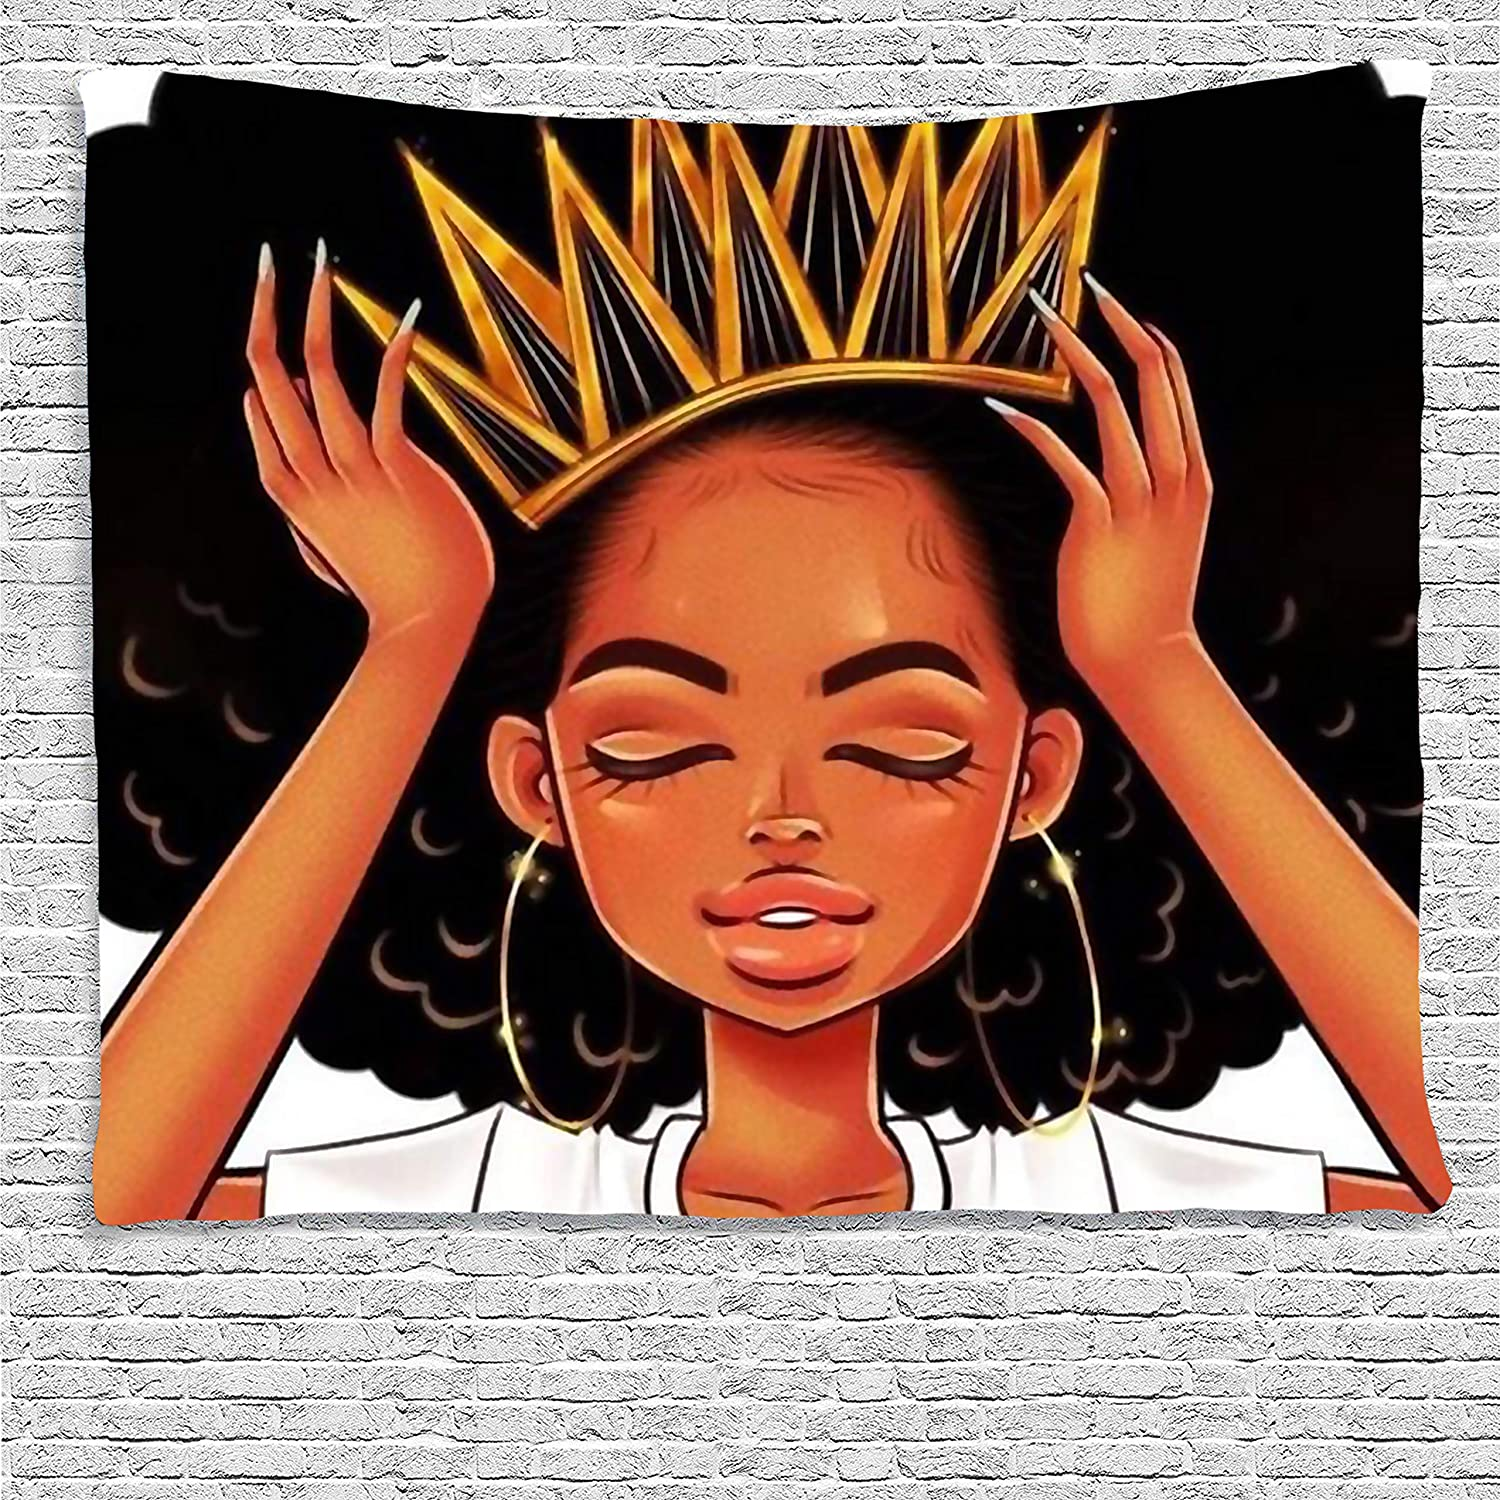 SARA NELL Black Art Wall Tapestry Hippie Art African American Women Girl with Crown Tapestries Wall Hanging Throw Tablecloth 50X60 Inches for Bedroom Living Room Dorm Room